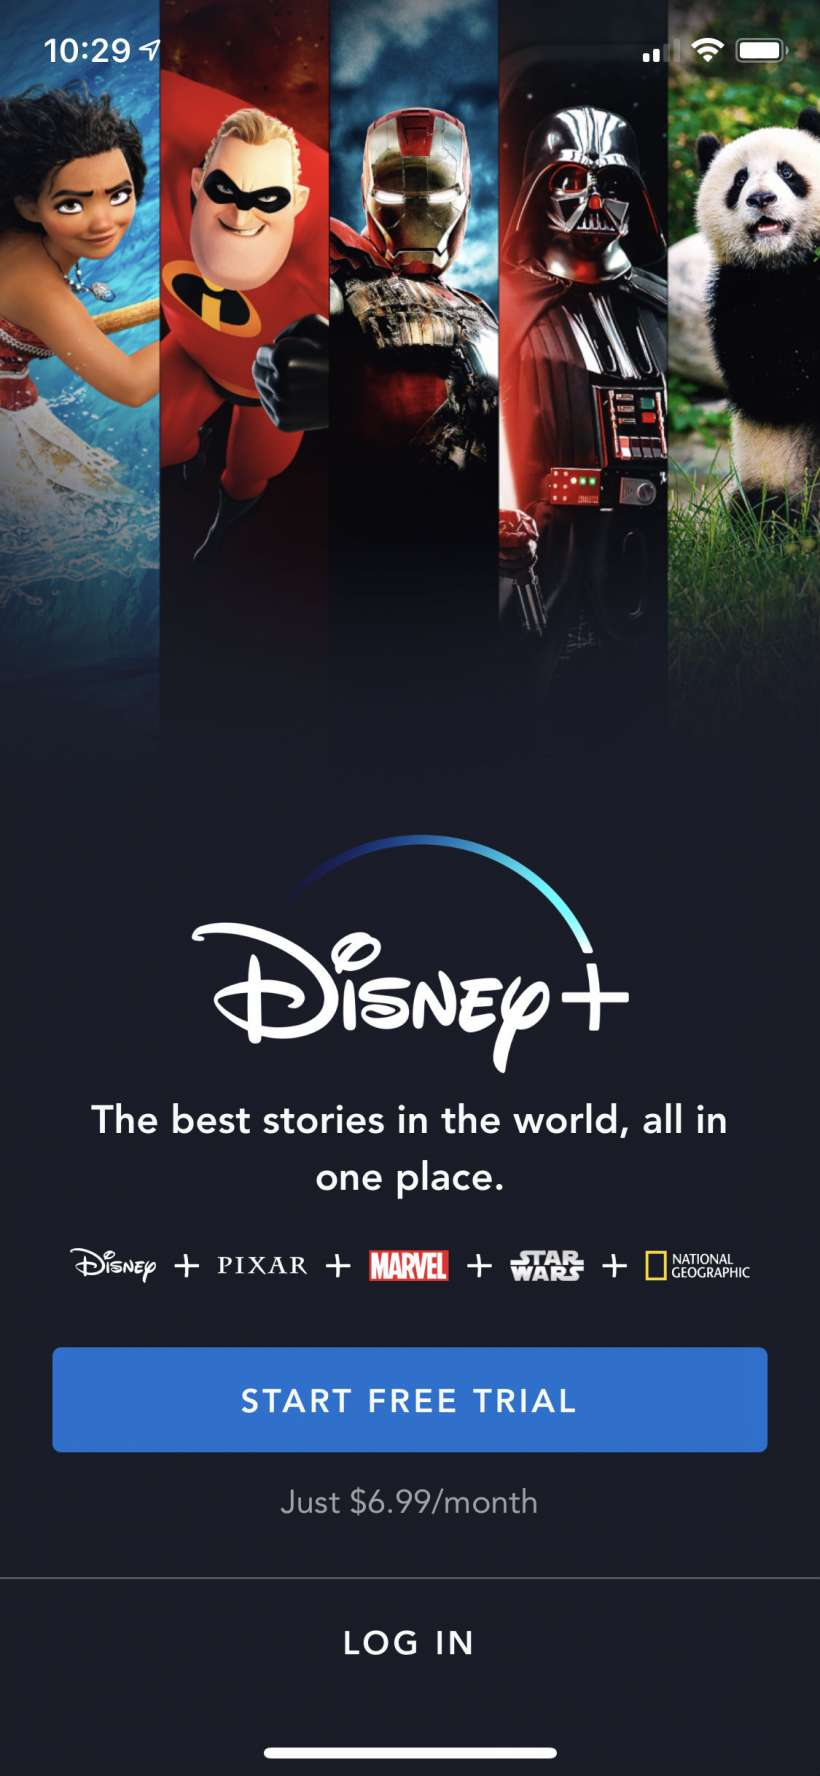 How to start your free one week trial period of Disney+ on iPhone and iPad.